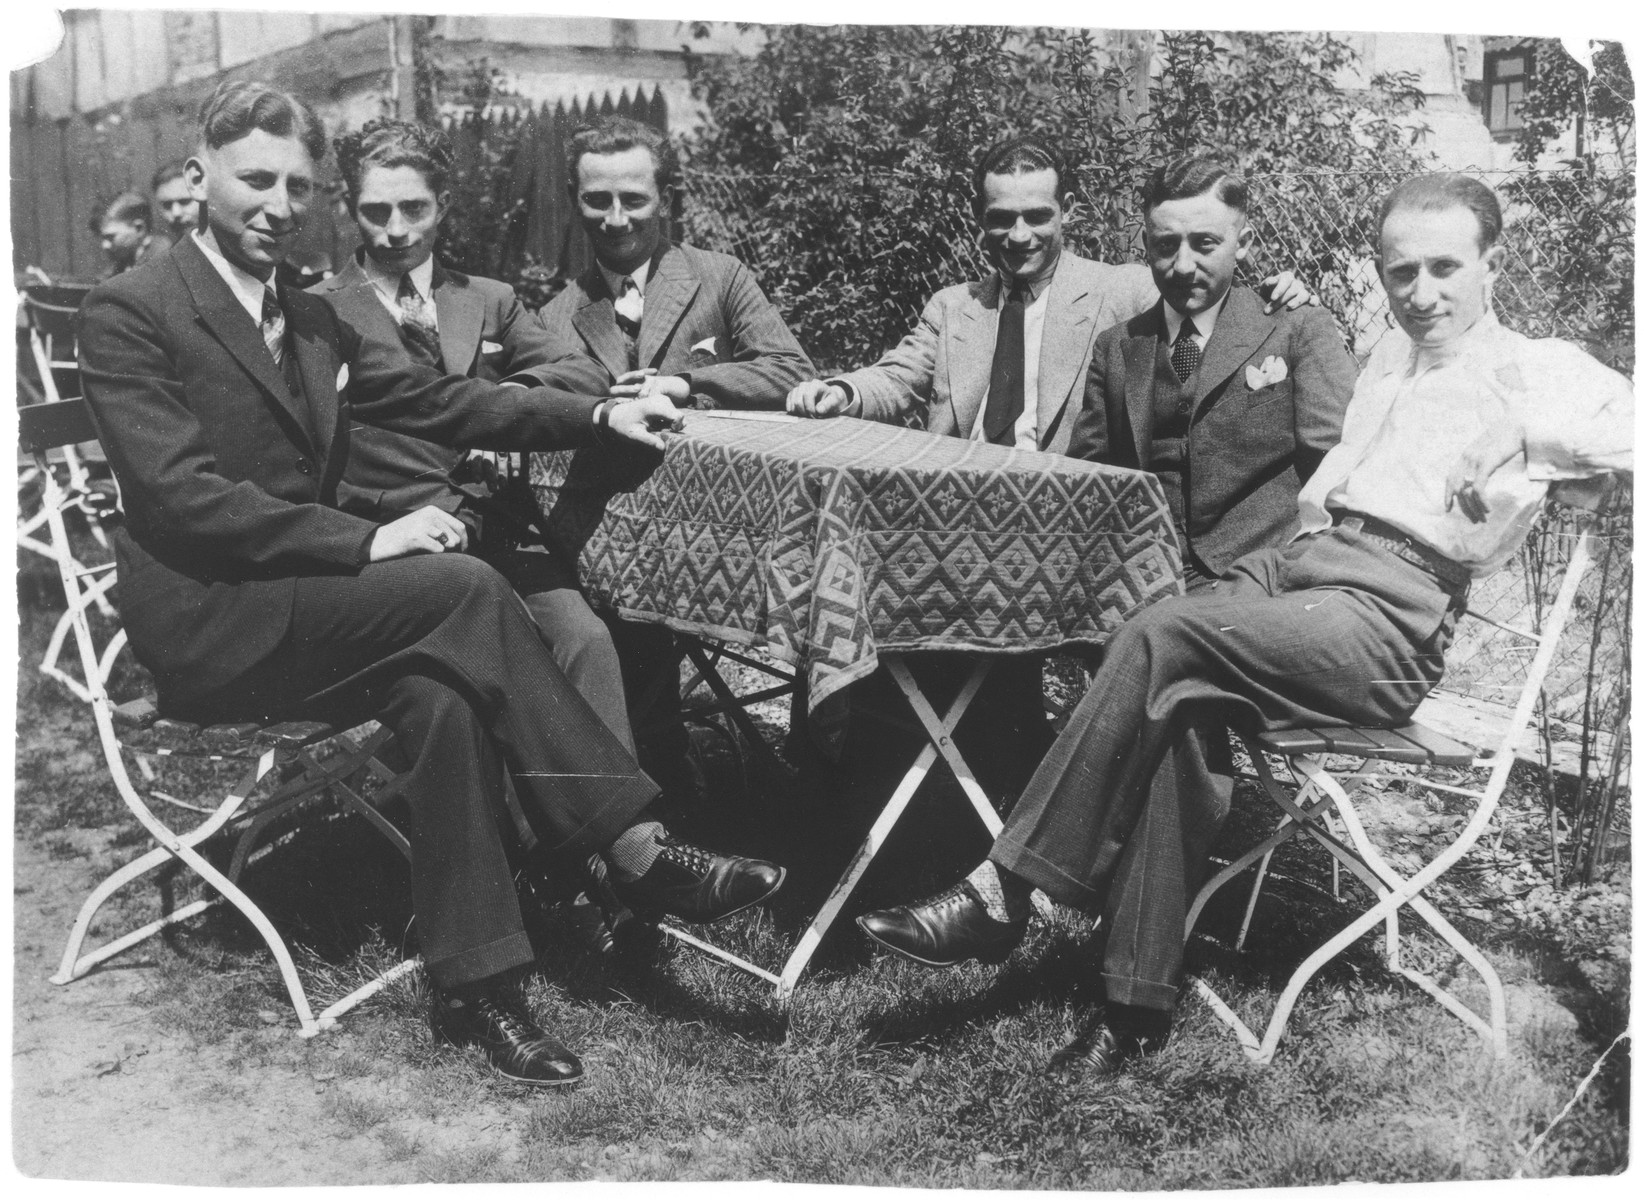 A group of young Jewish men wearing suits and ties sits outside around a table.  Among those pictured is Siegfried Kaiser.